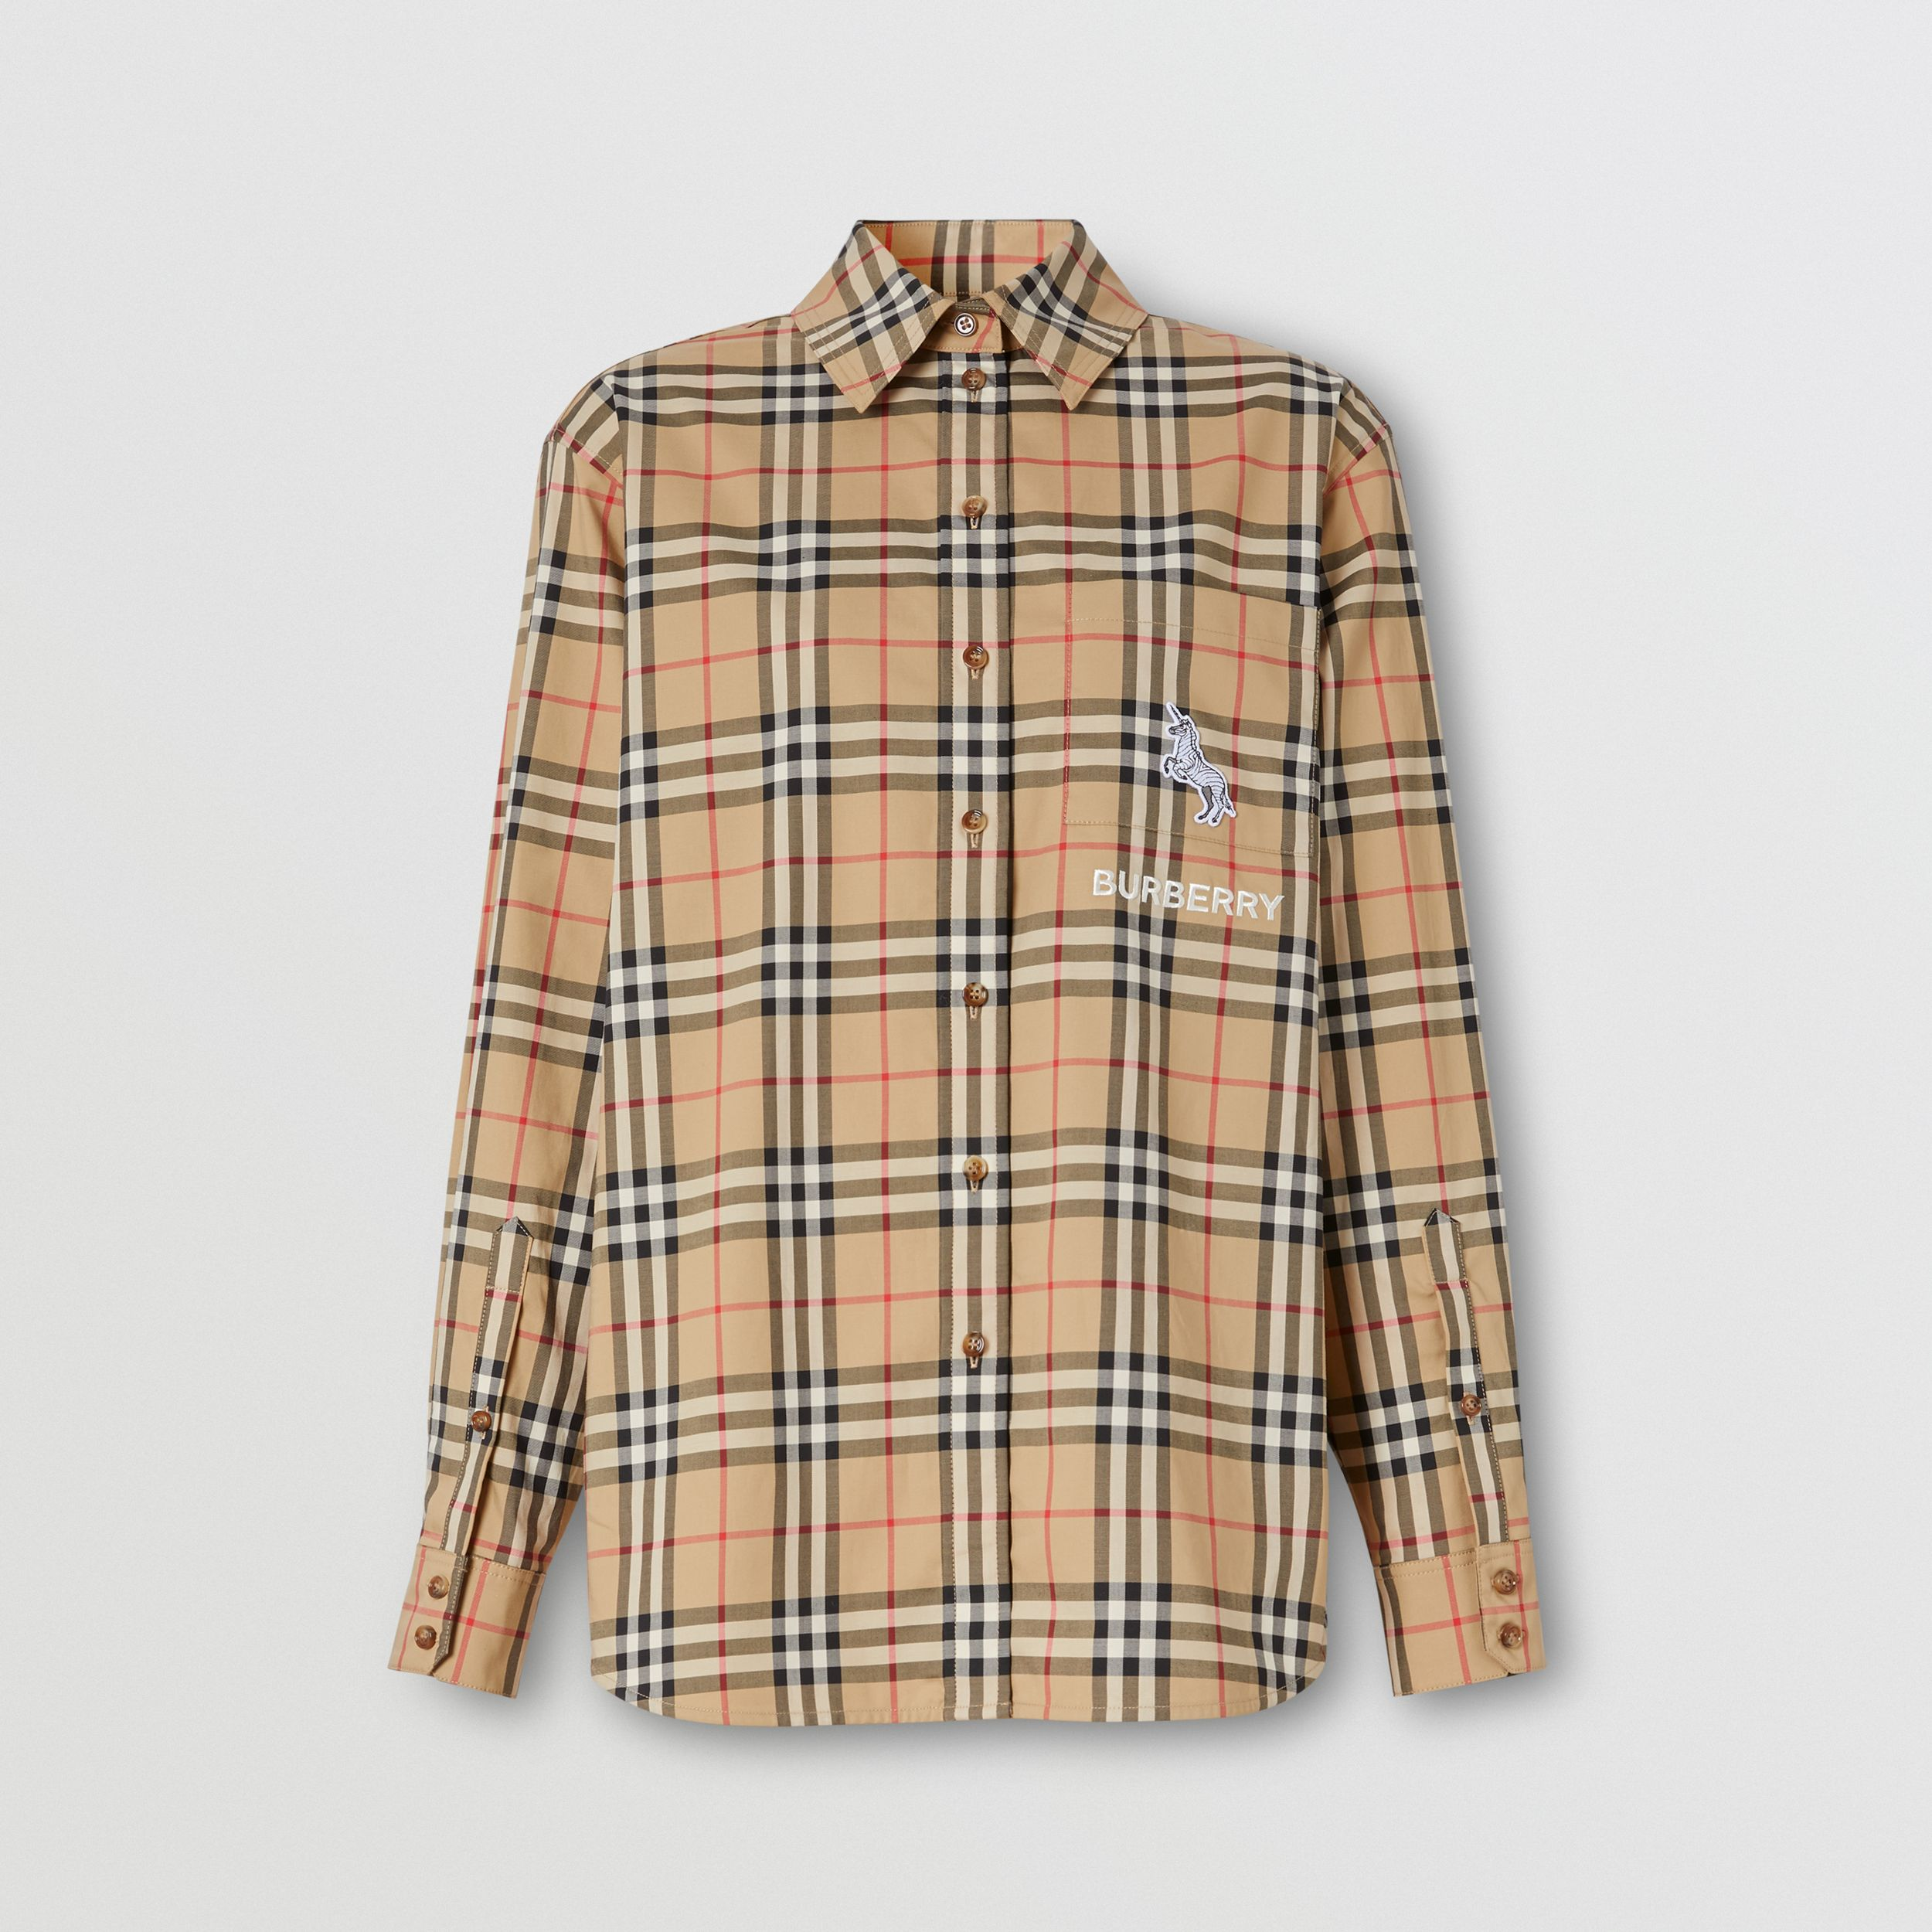 Zebra Appliqué Vintage Check Cotton Oversized Shirt - Women | Burberry - 4